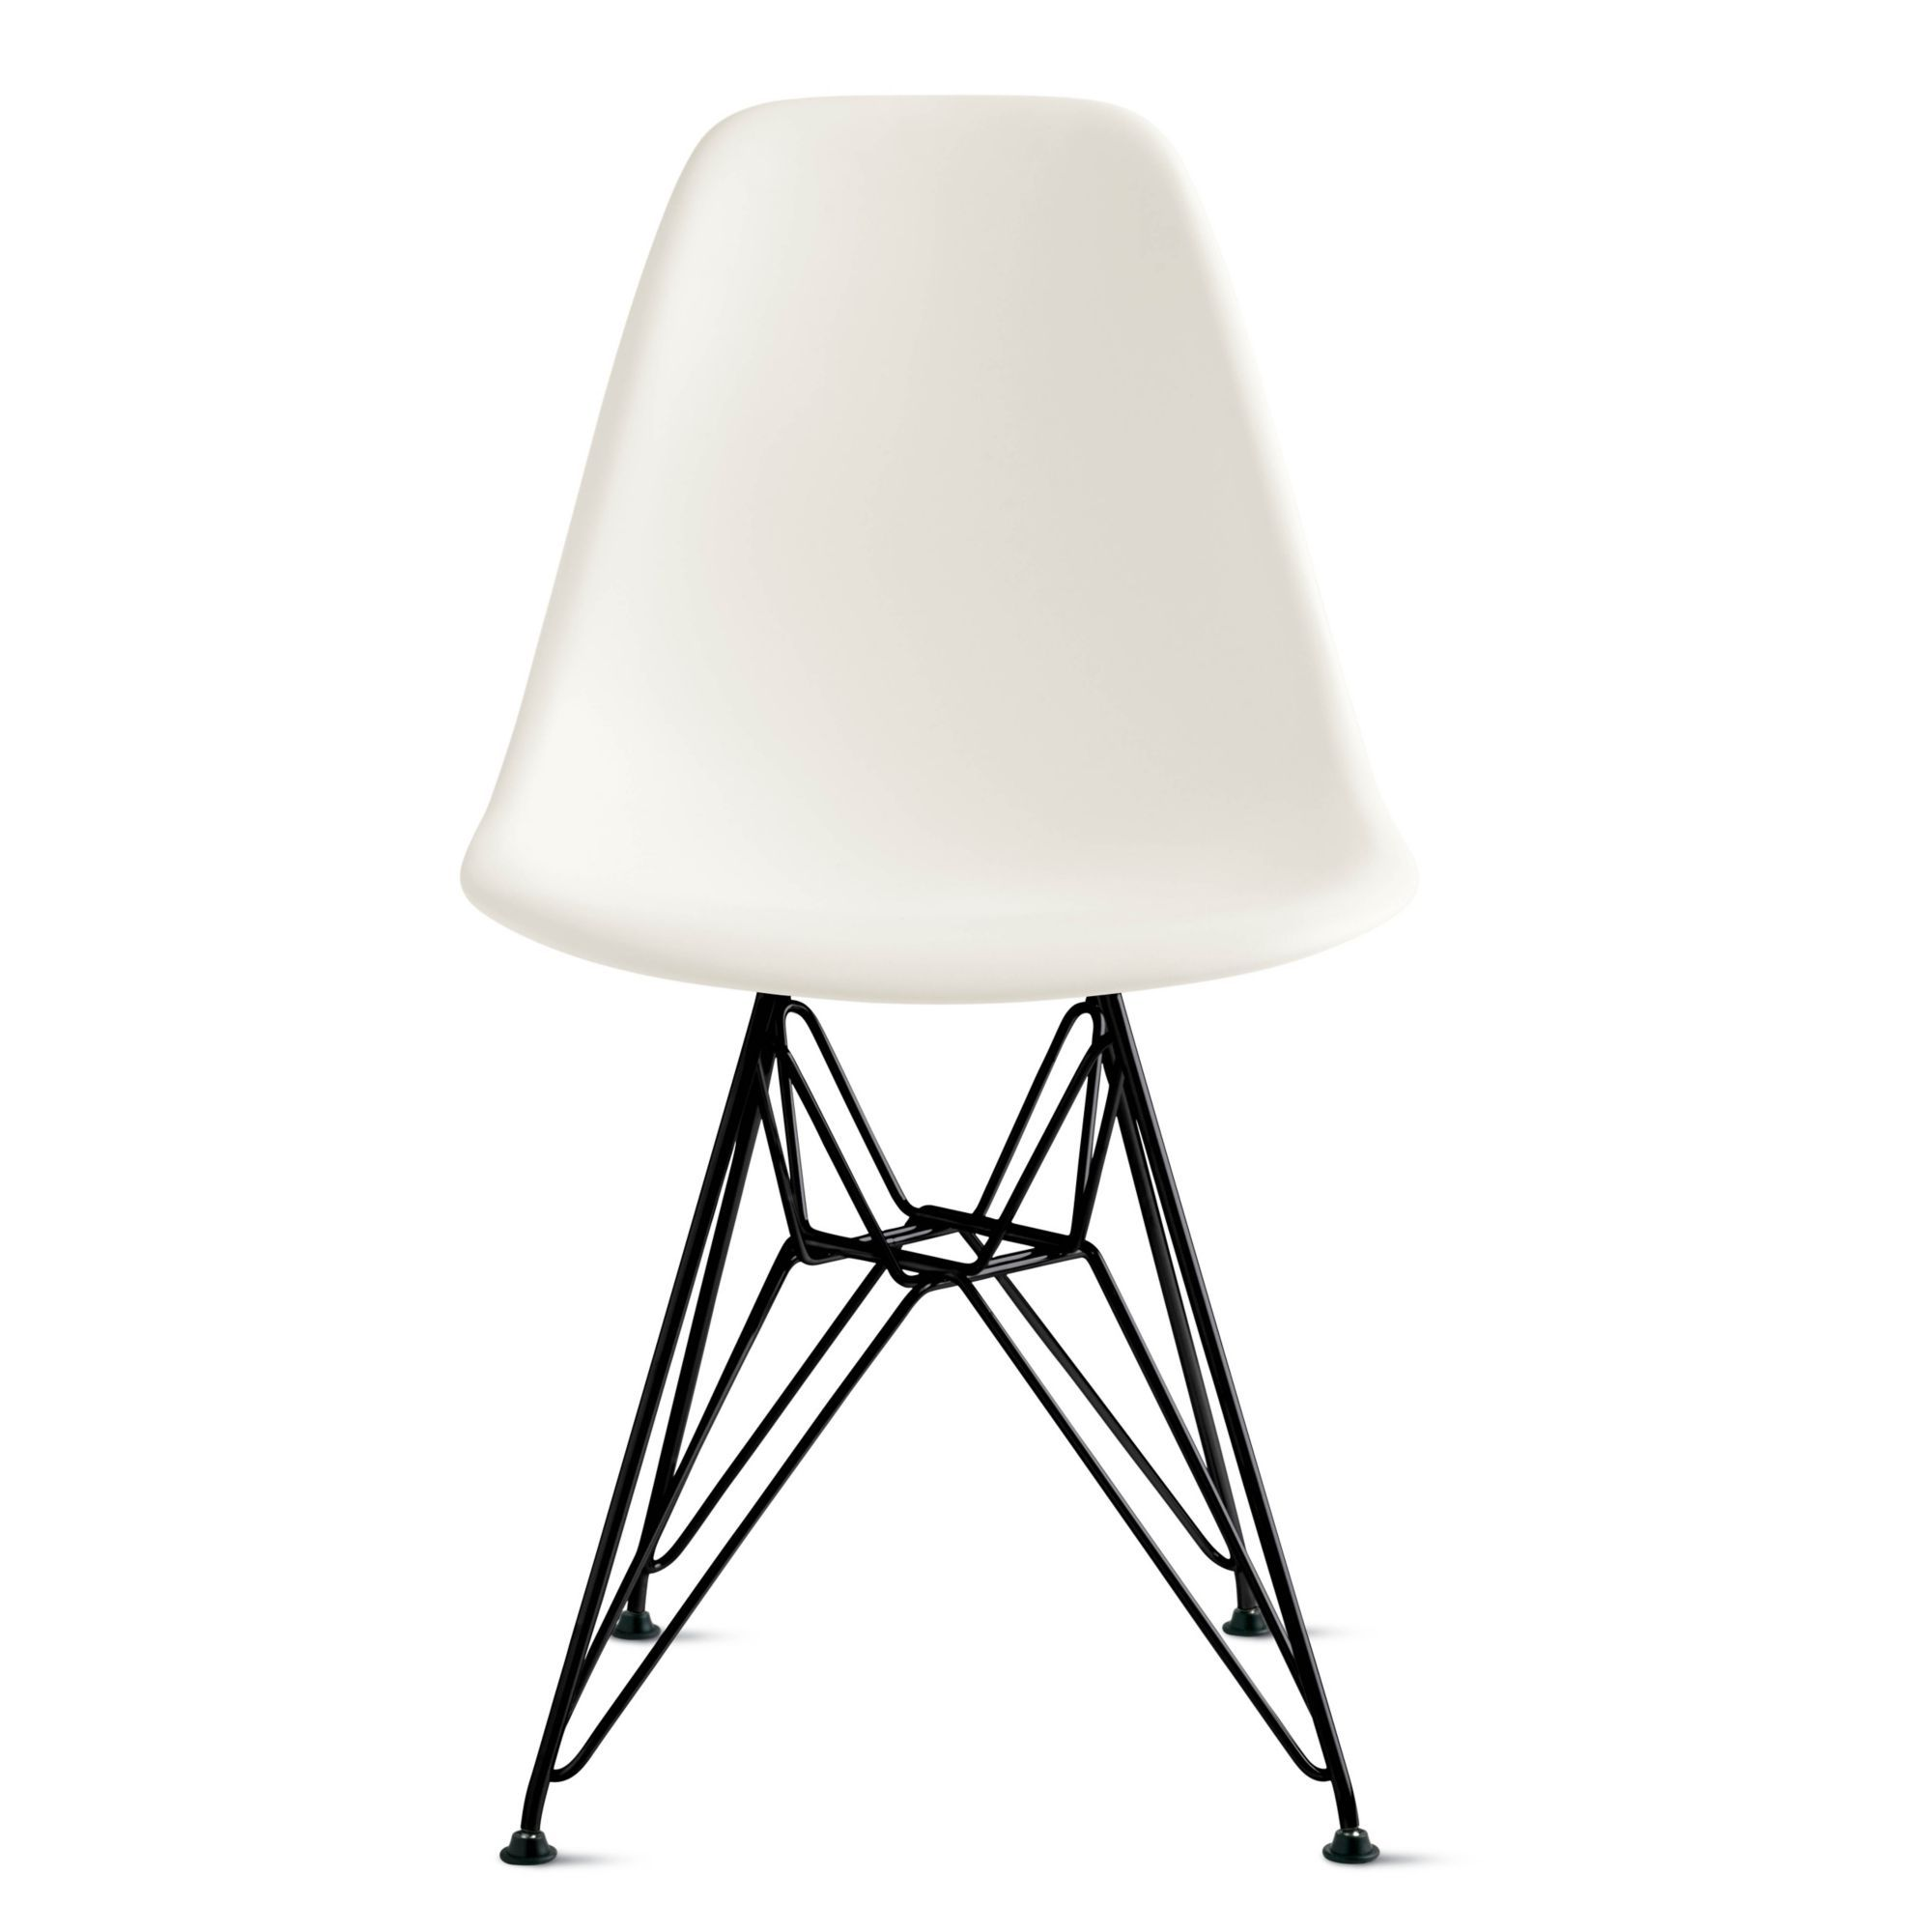 Eames Molded Plastic Wire Base Side Chair Dsr Eames Molded Plastic Side Chair Wire Chair Eames